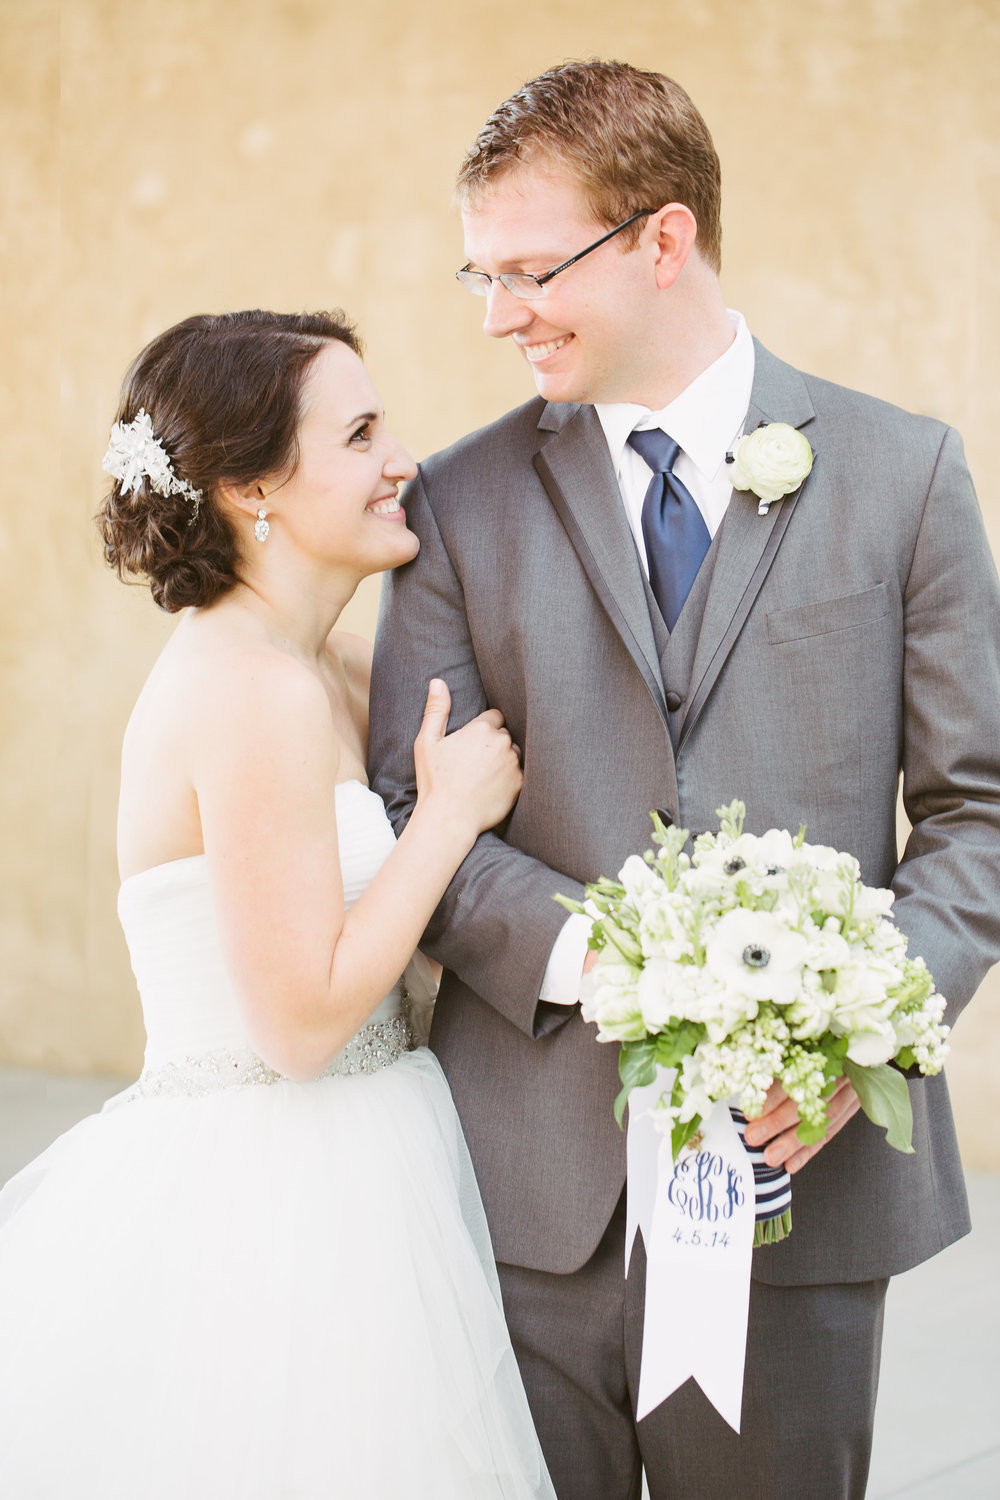 View More: http://laurenrosenauphoto.pass.us/katieanderic